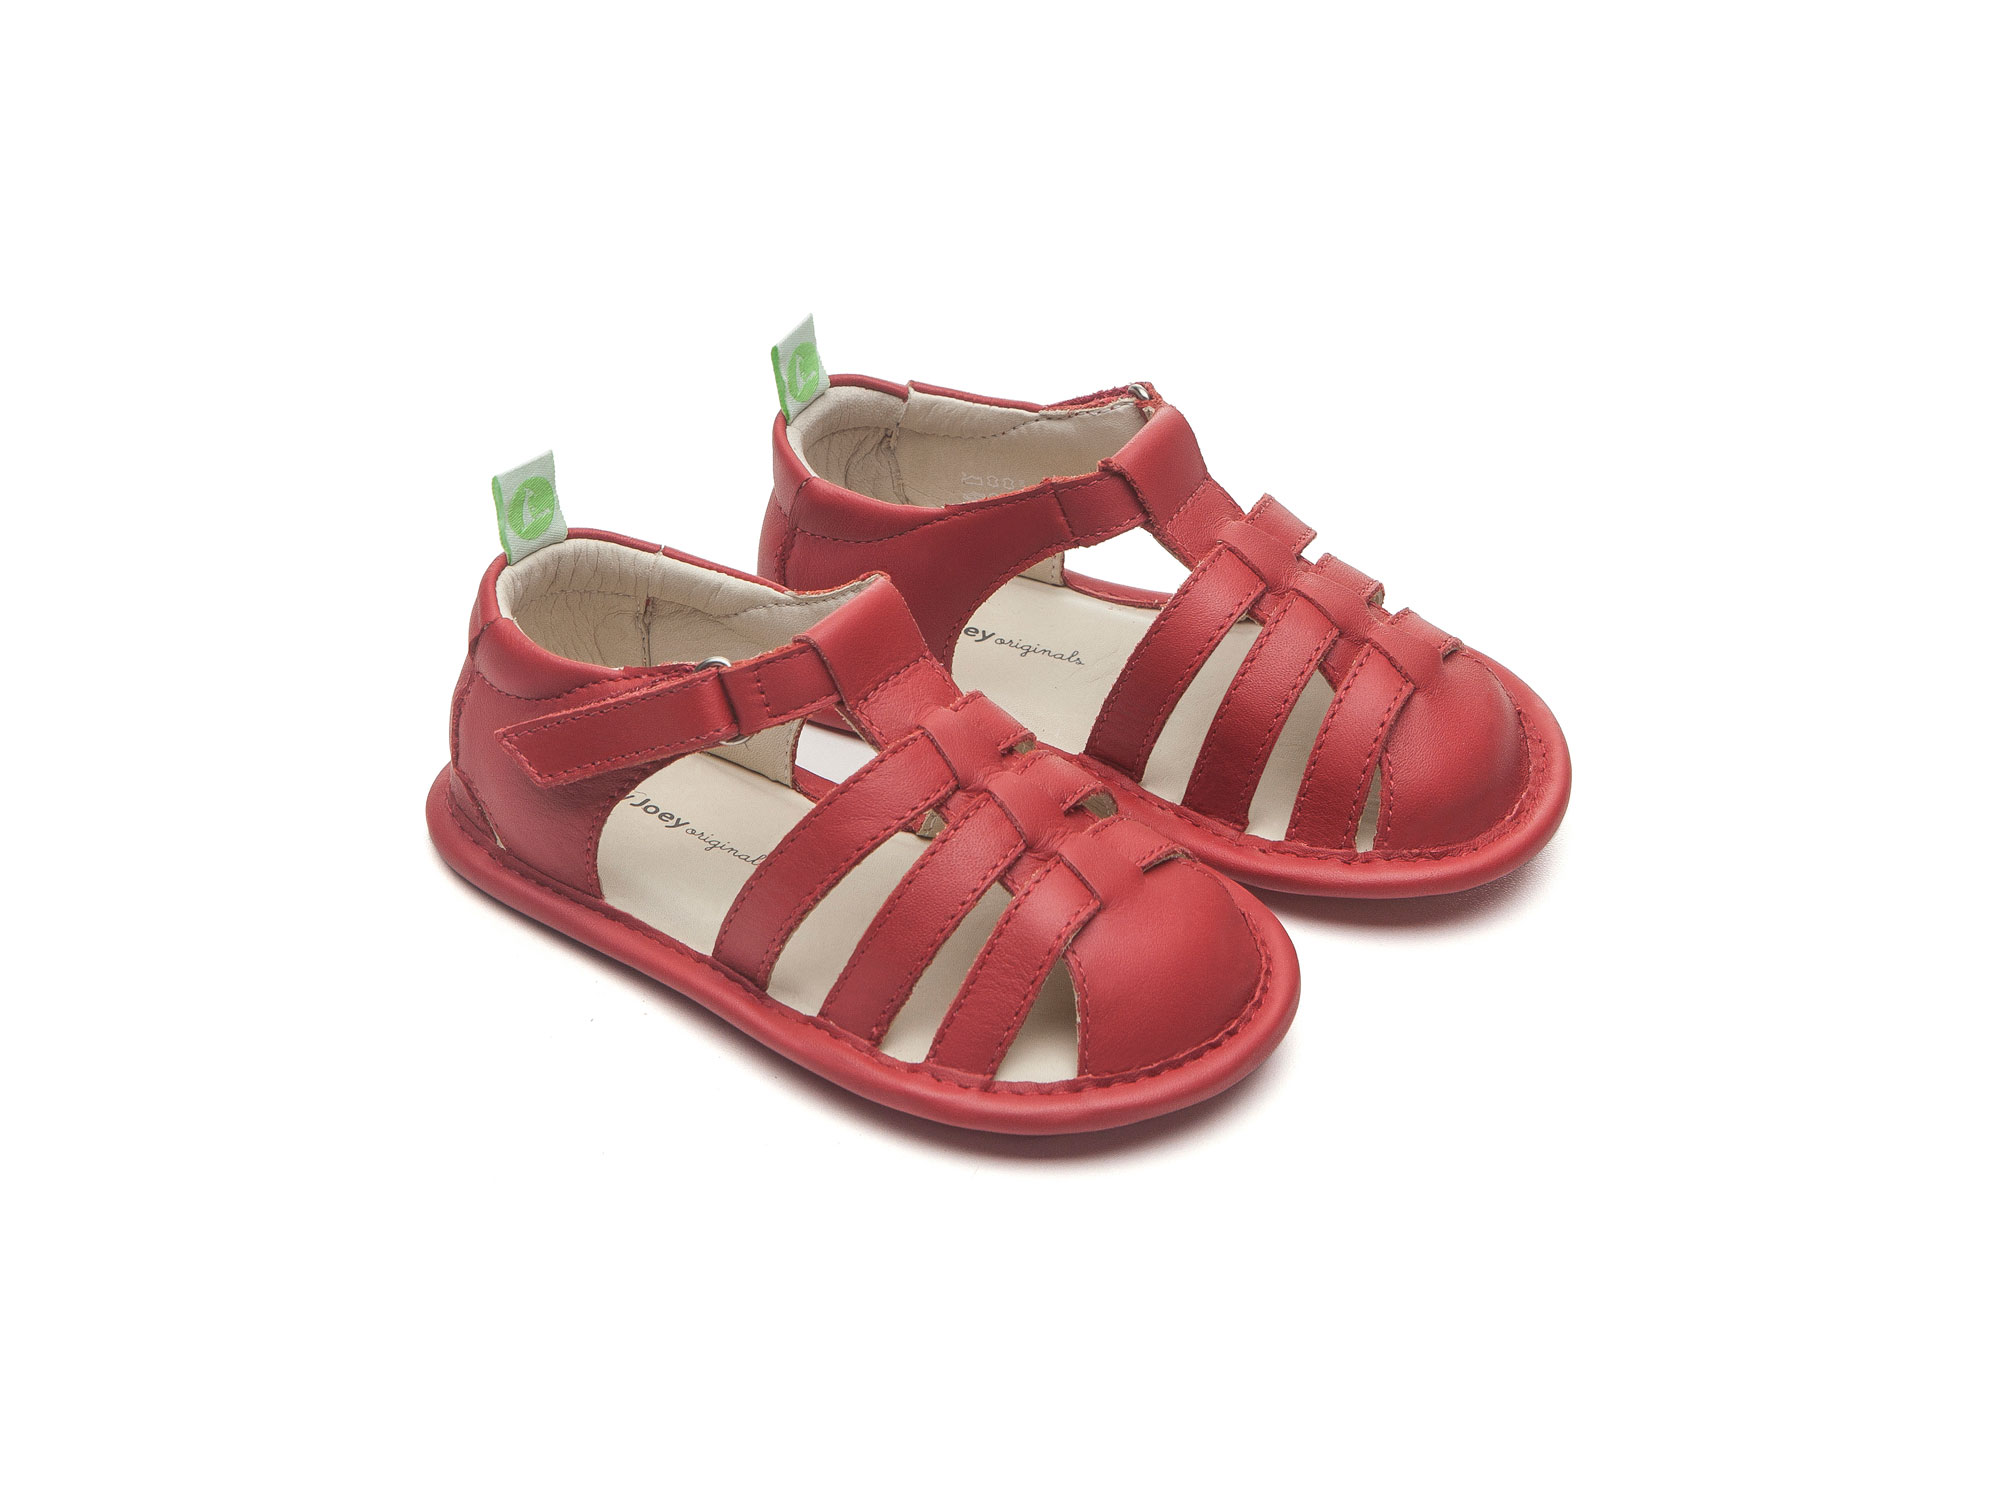 Sandal Minty Pomo  Baby for ages 0 to 2 years - 0